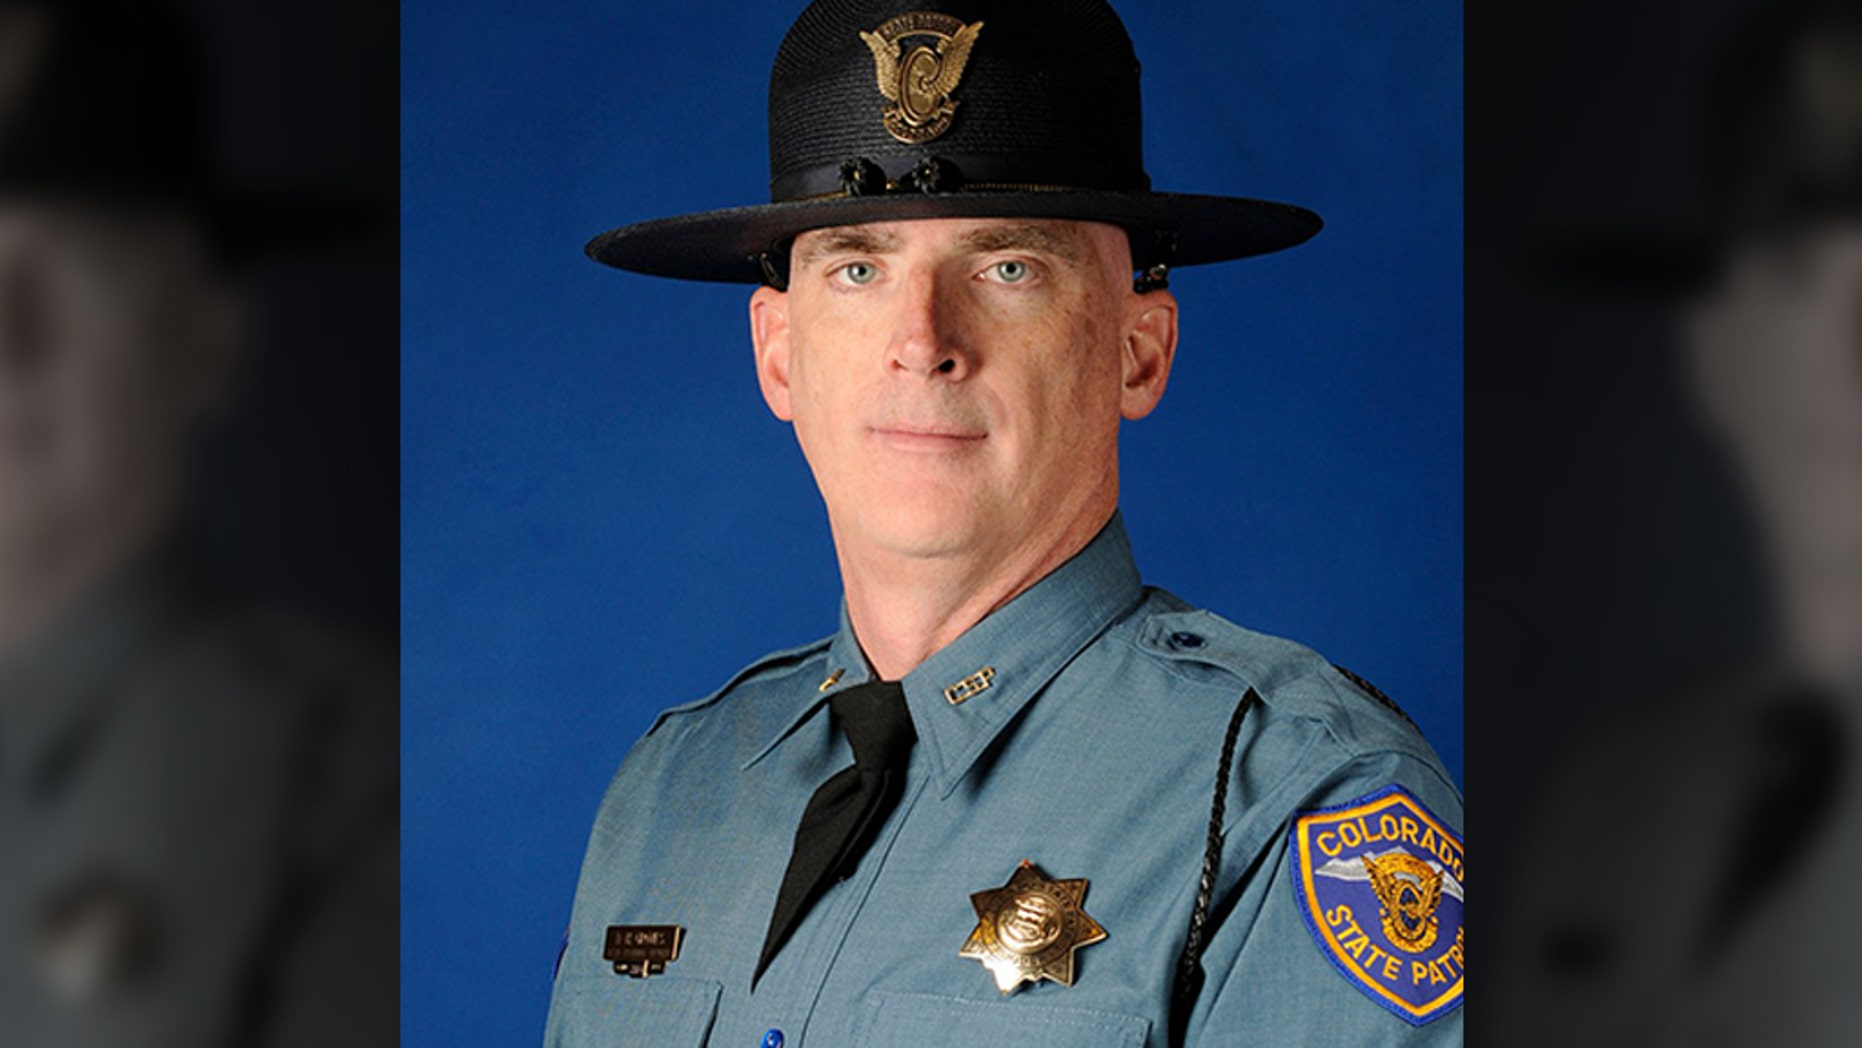 Cpl. Daniel Groves, 52, was killed on Wednesday when he was struck by a vehicle on Interstate76, officials said.